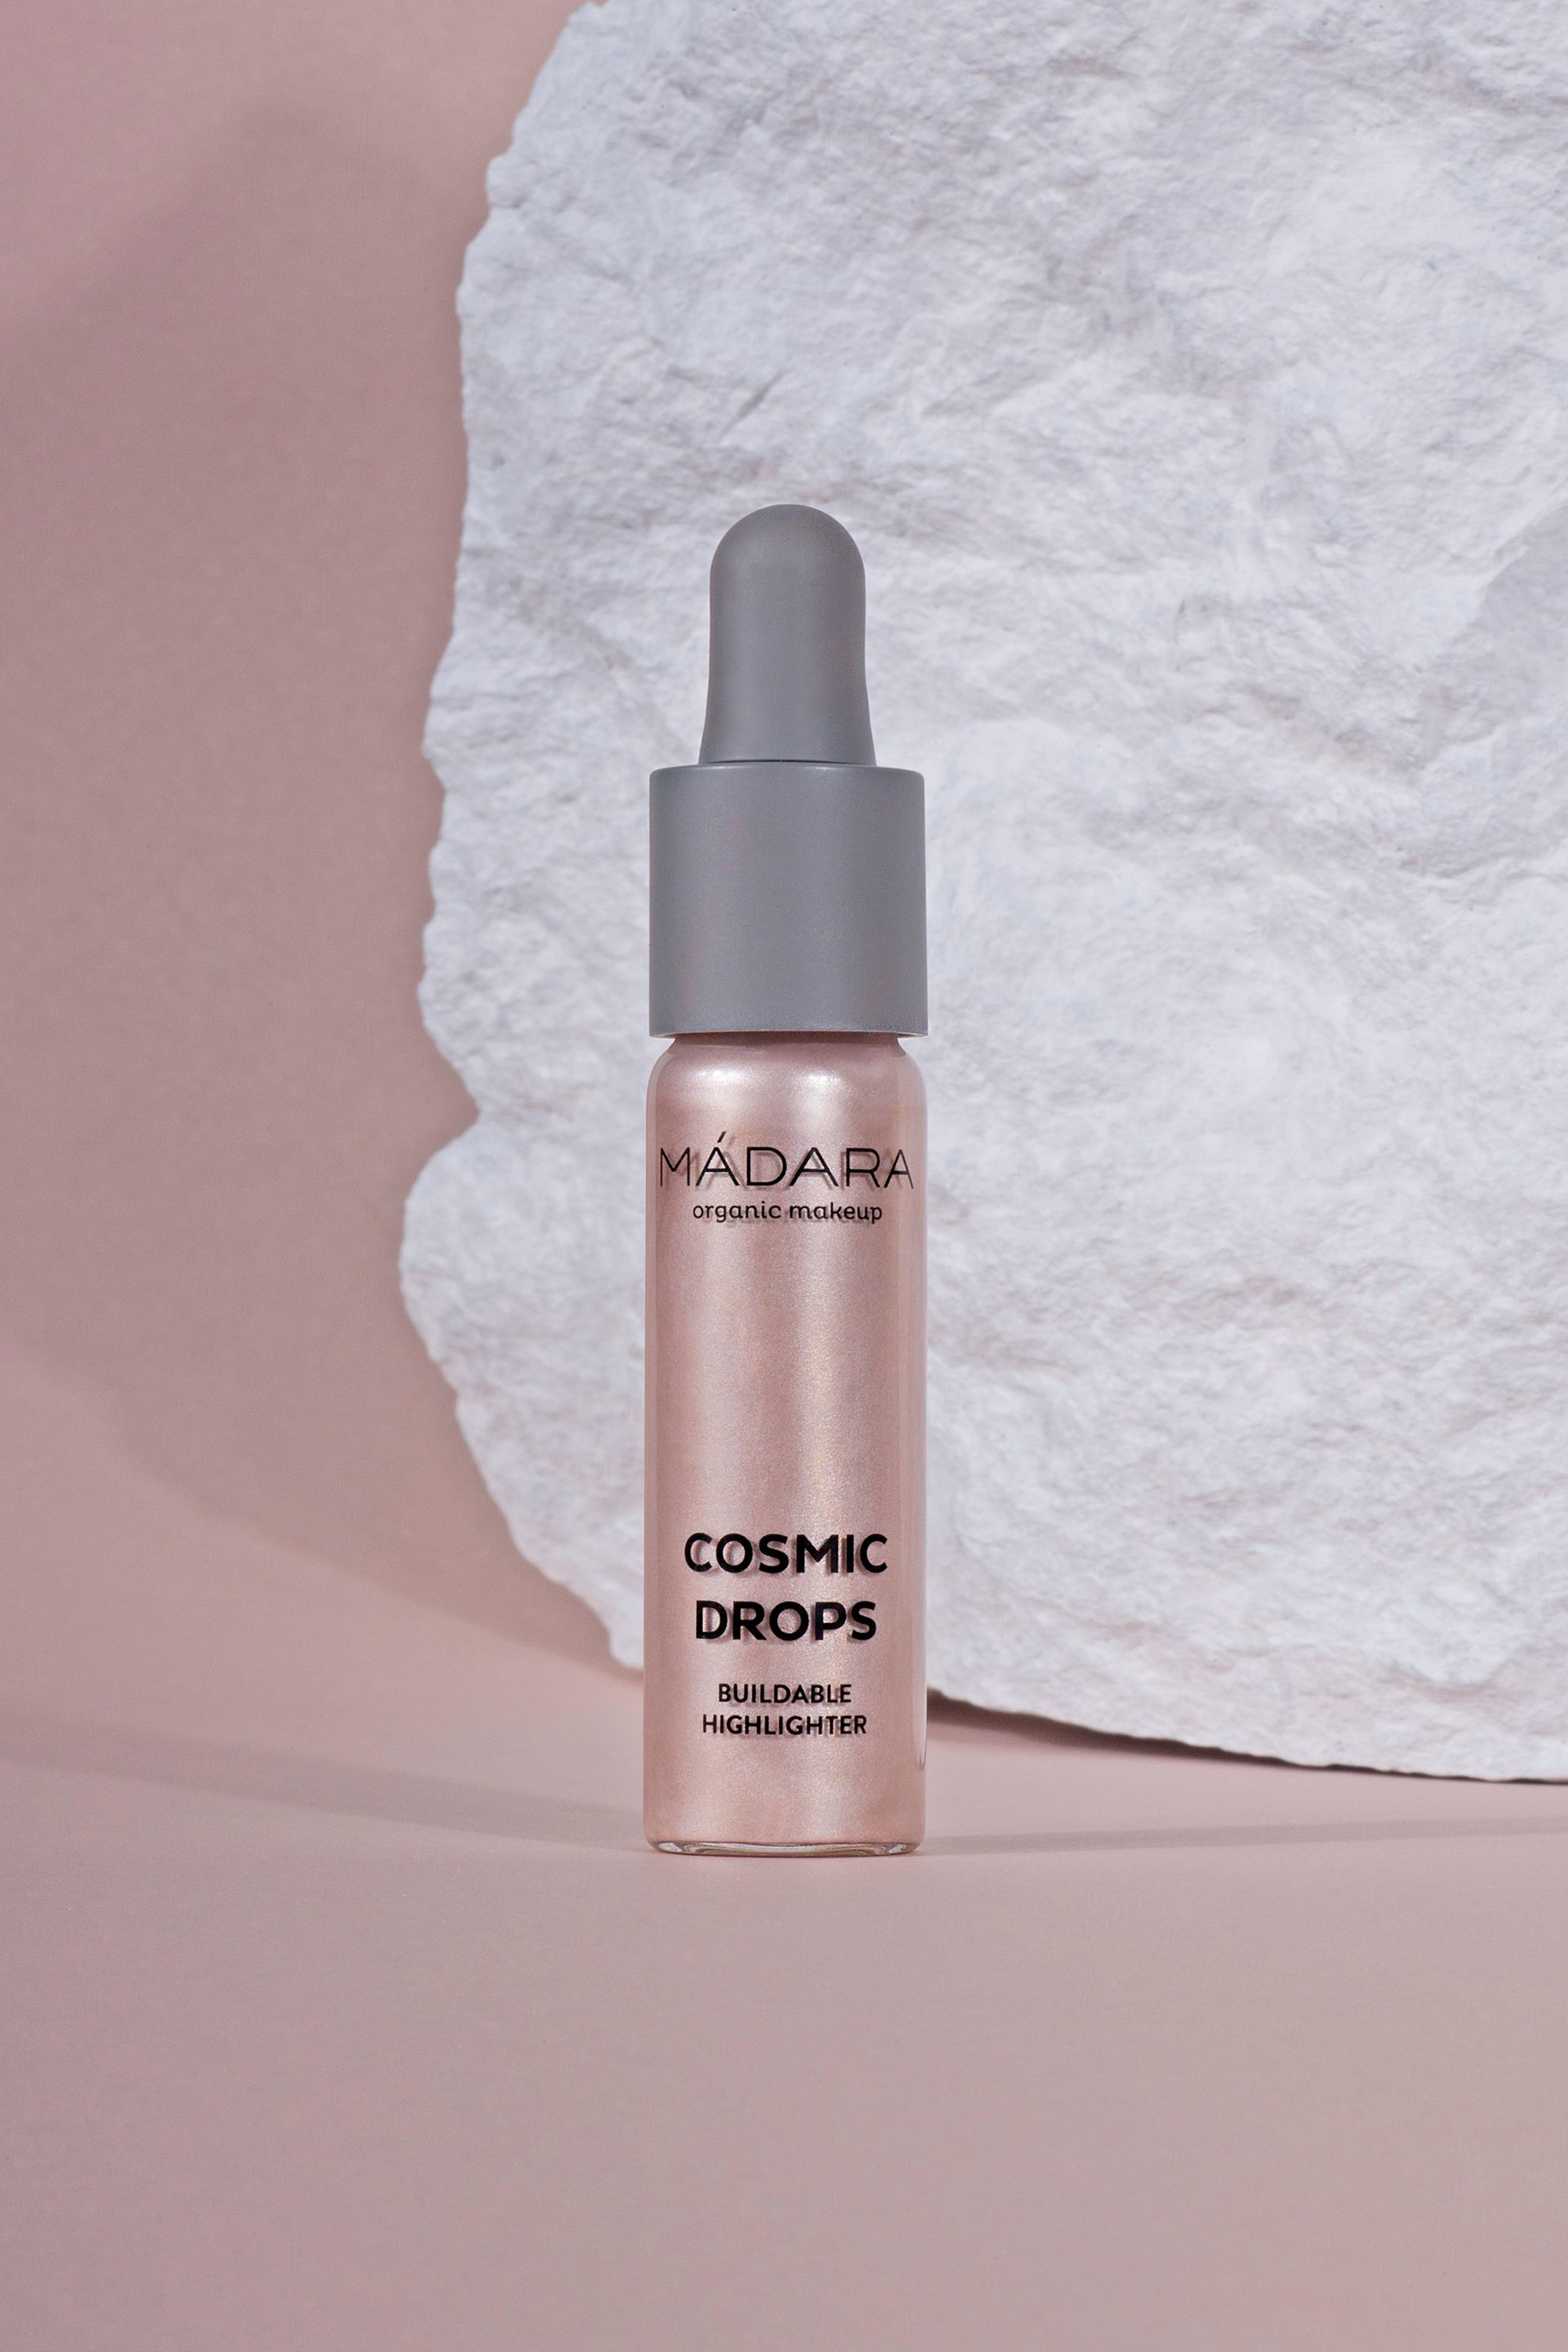 Blissim : Mádara Cosmetics - Highlighter liquide Cosmic Drops - 2 Cosmic Rose